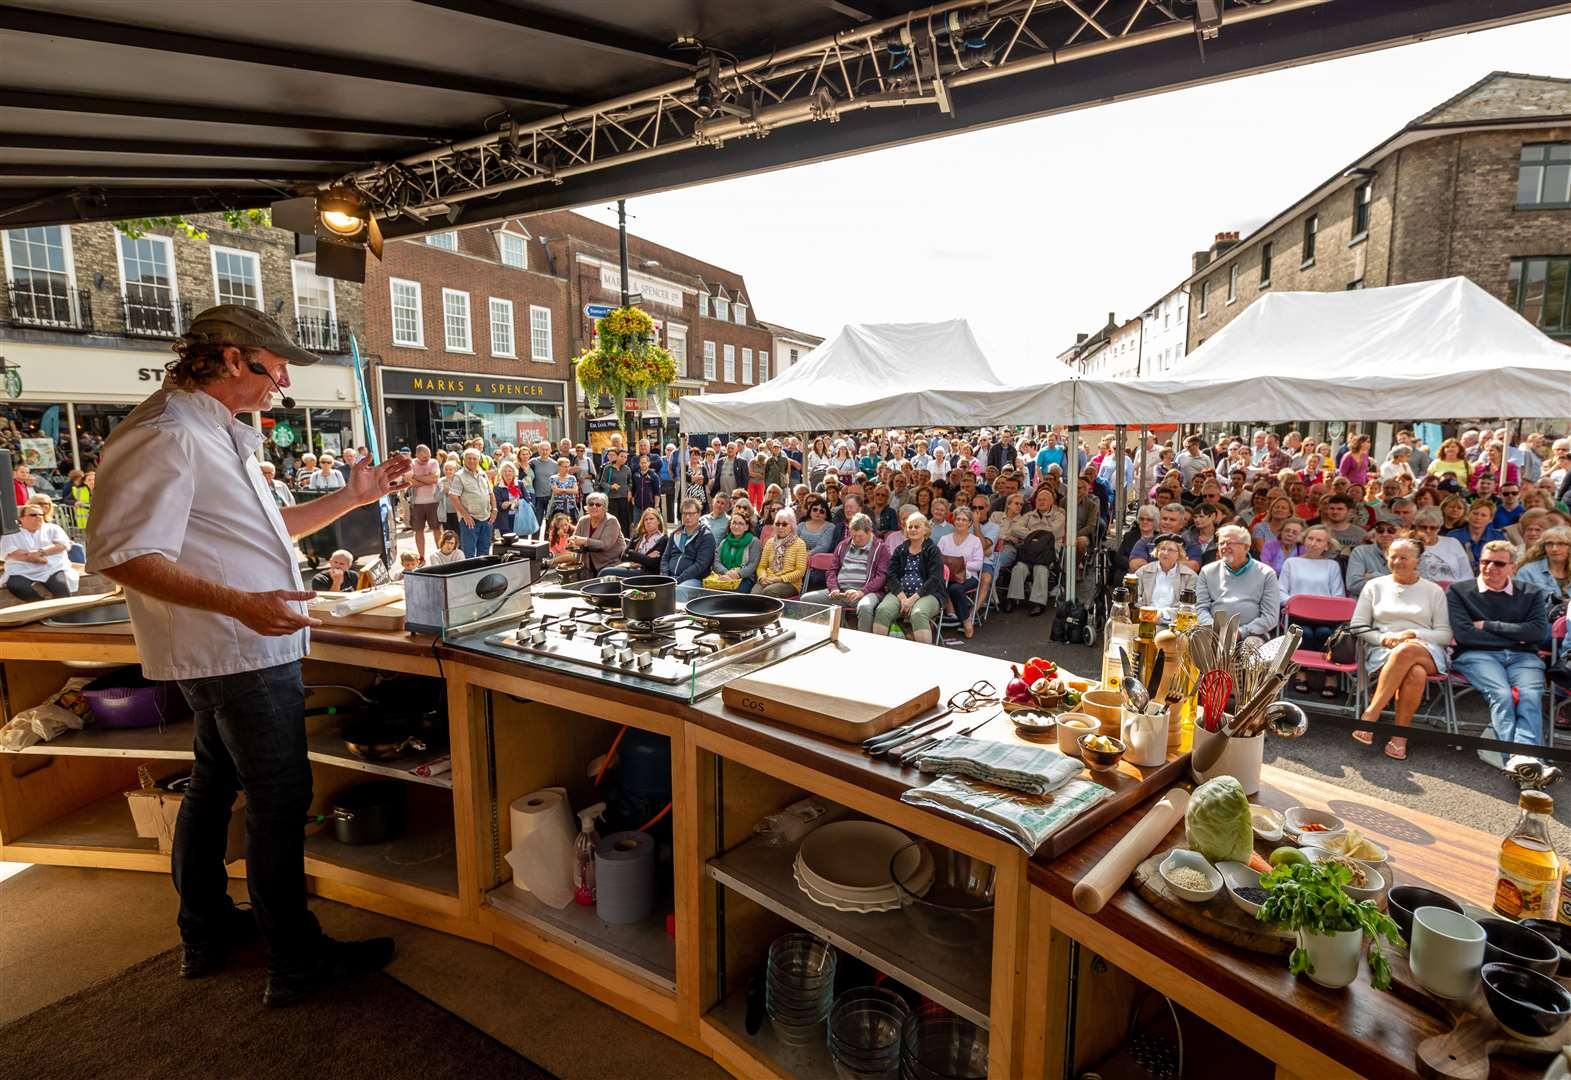 INTERACTIVE MAP: All the activities at Bury St Edmunds Food and Drink Festival